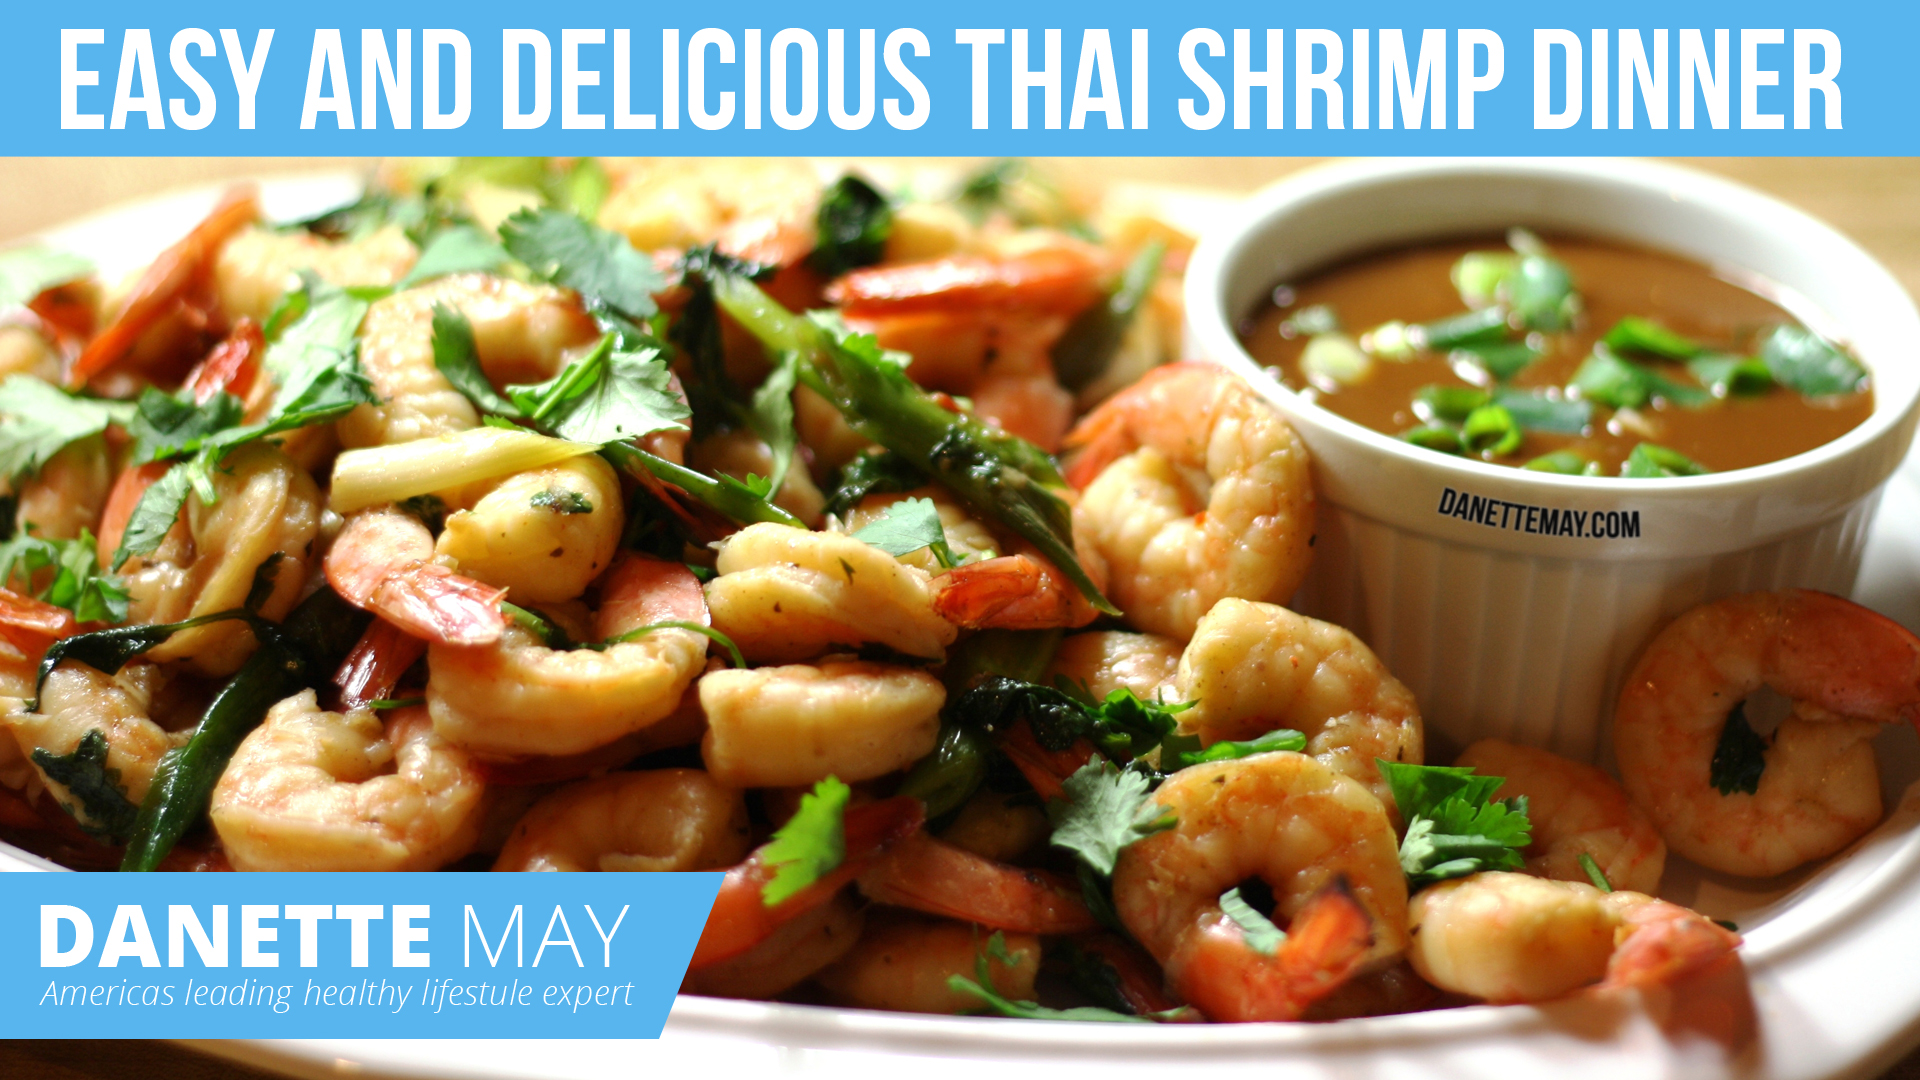 96 healthy shrimp dinner recipes easy healthy and on for Healthy and delicious dinner recipes